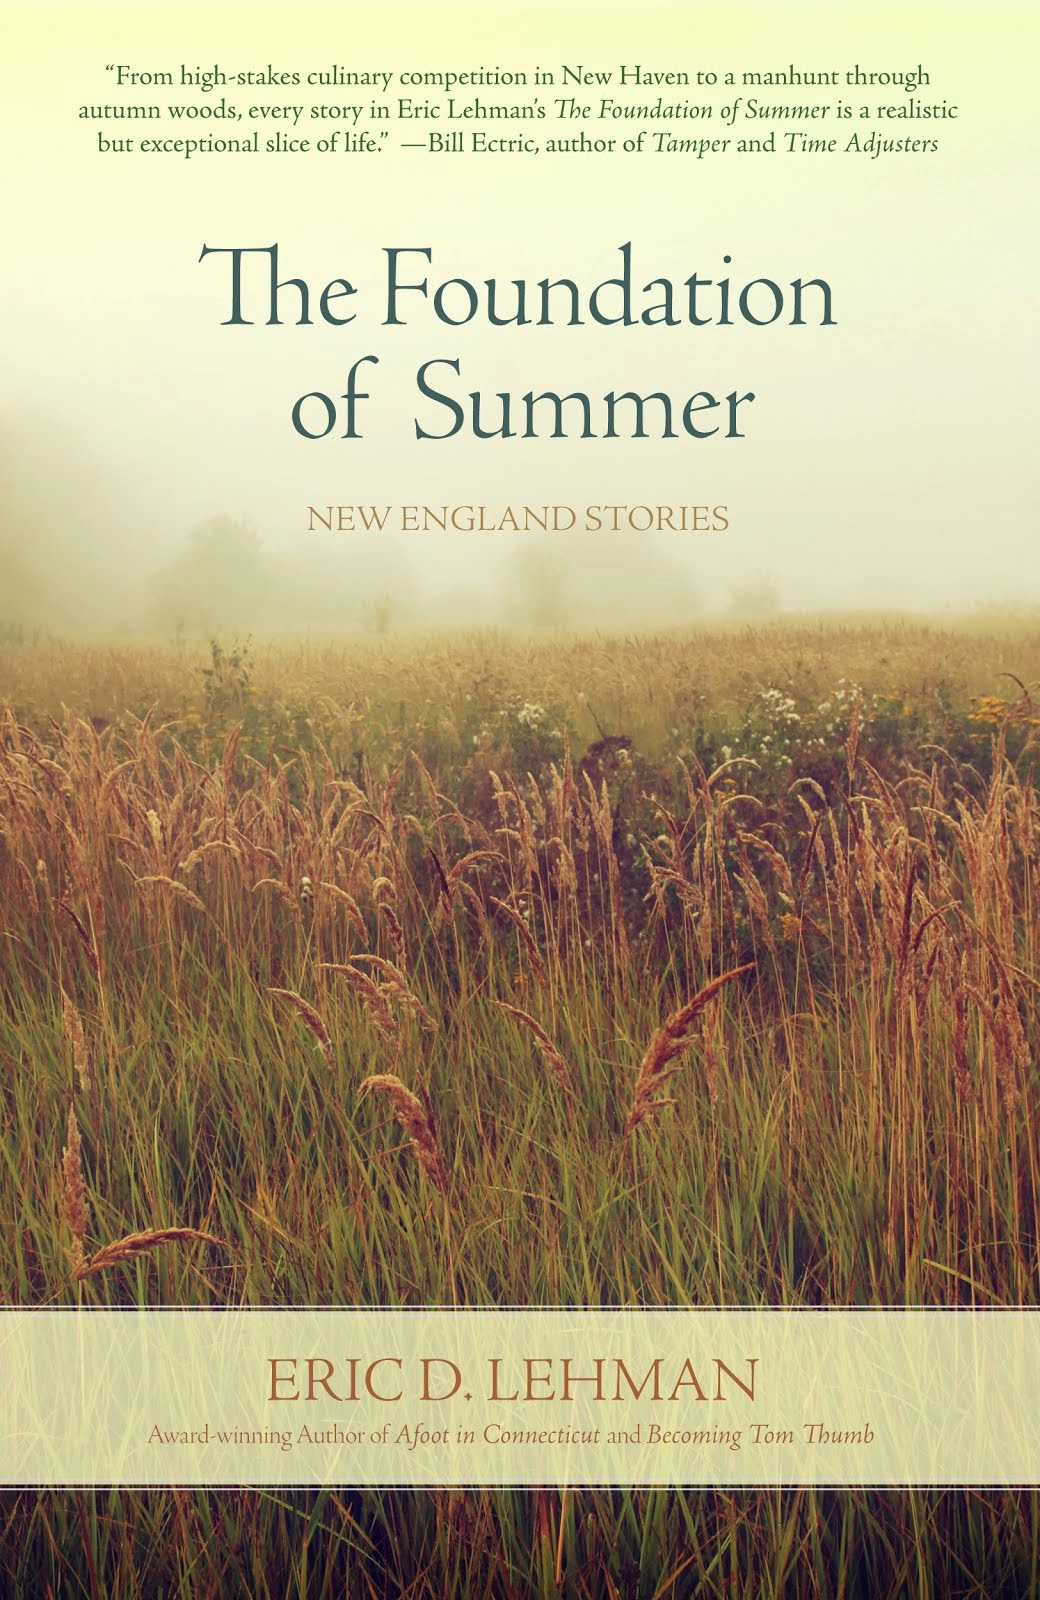 The Foundation of Summer